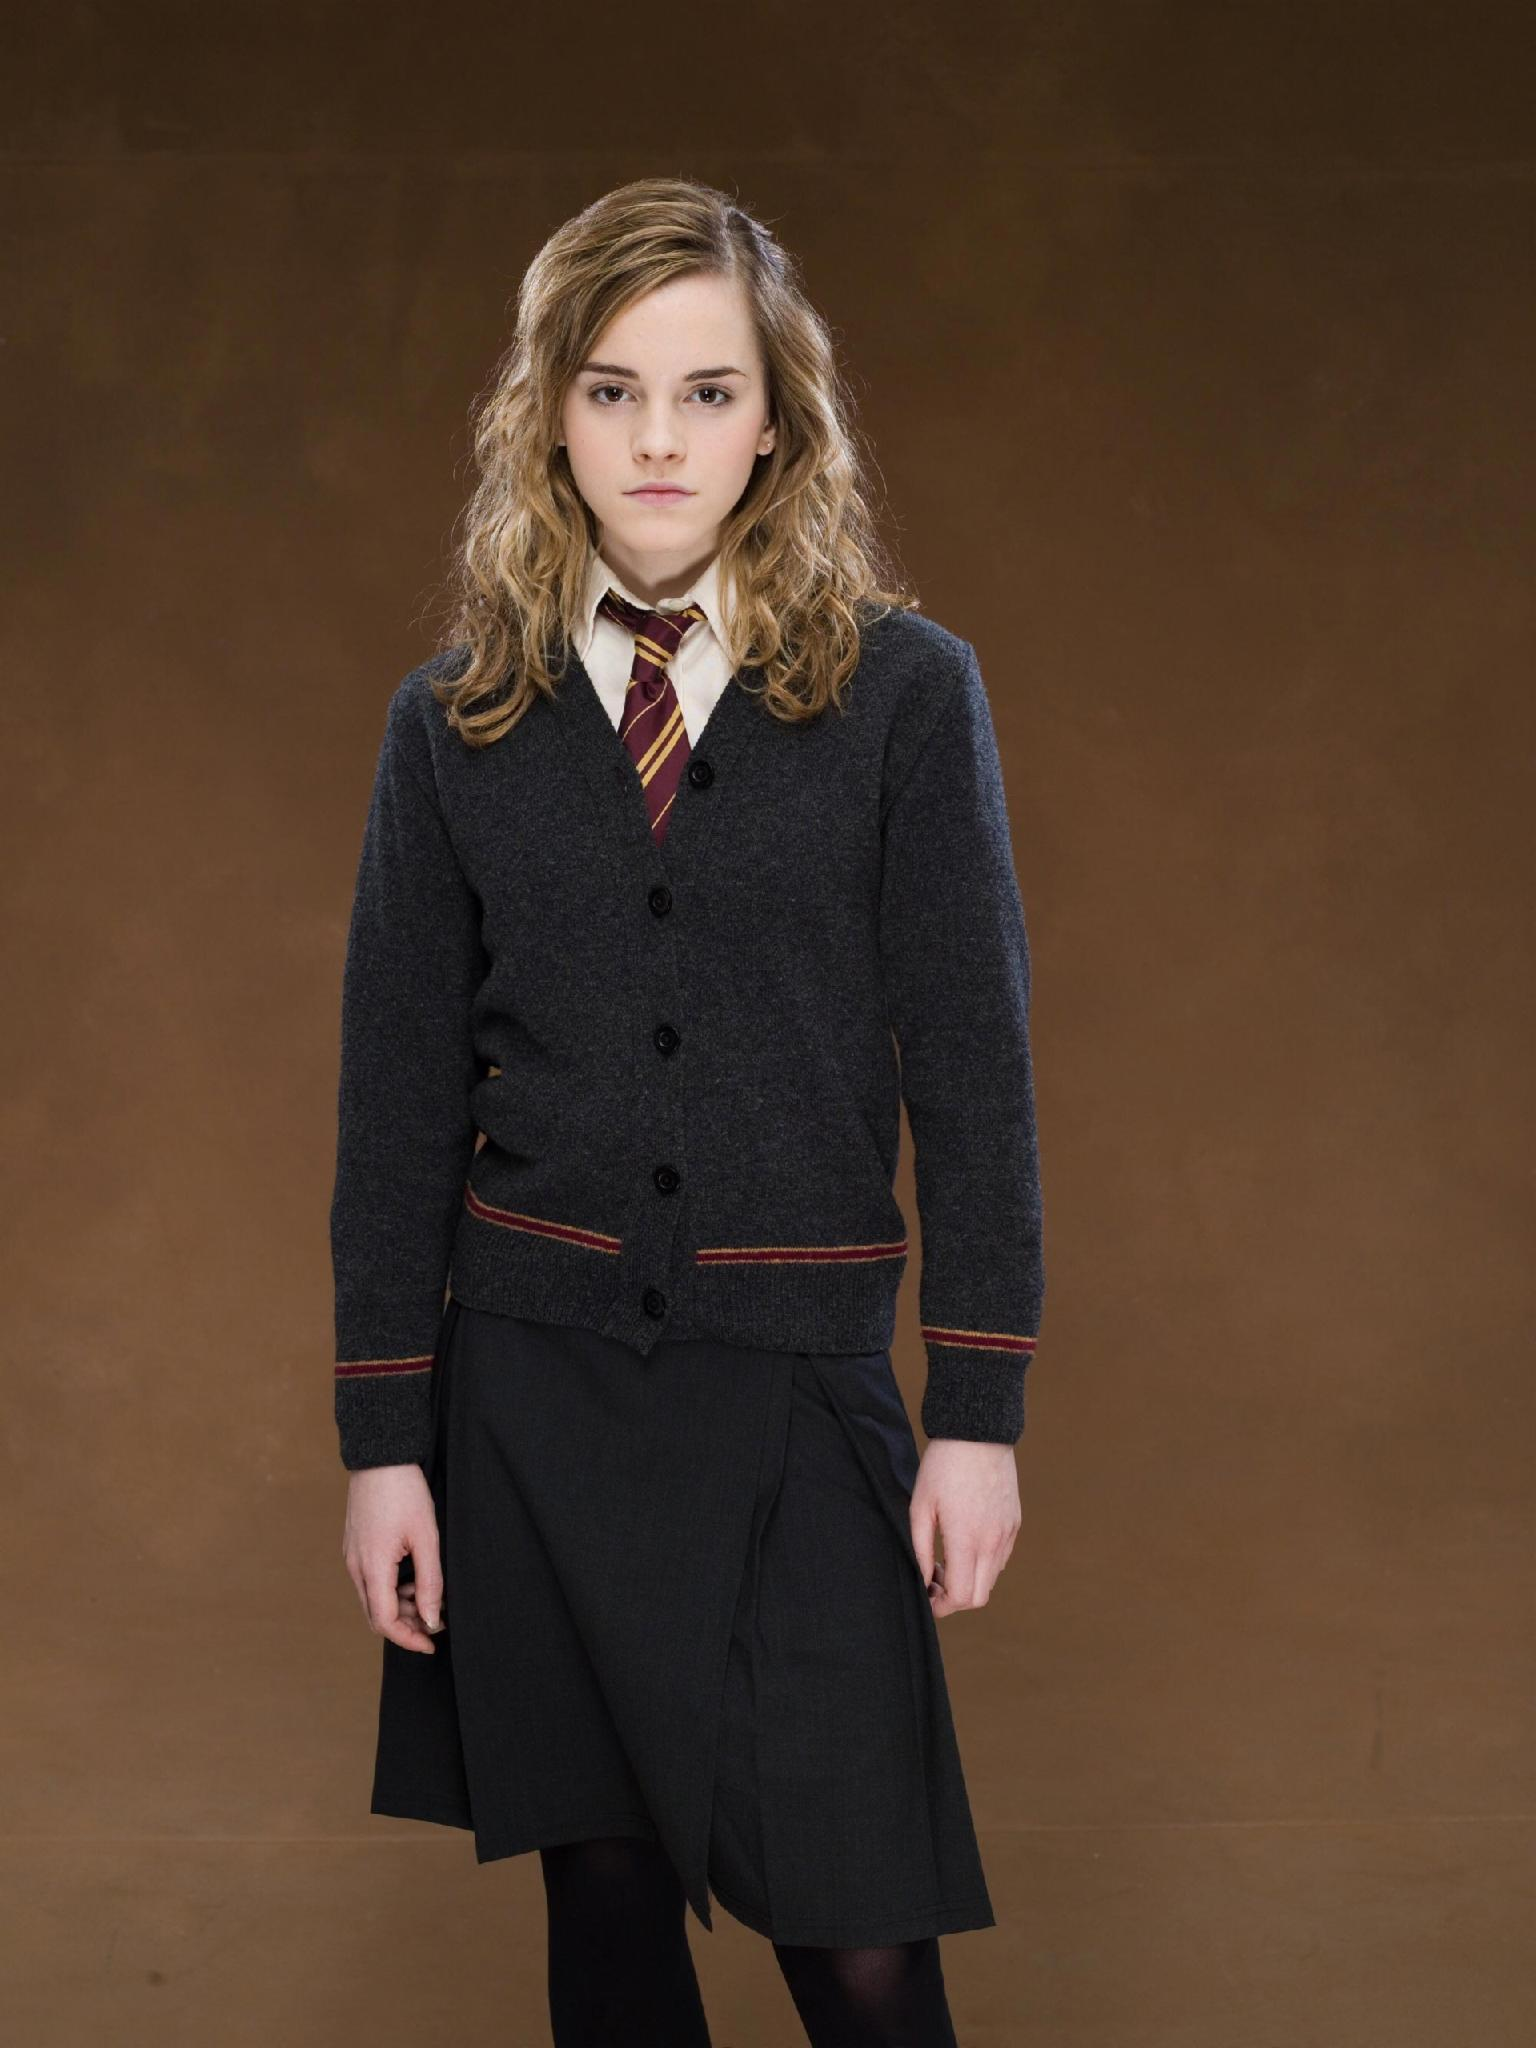 Which Harry Potter GIRL are you?